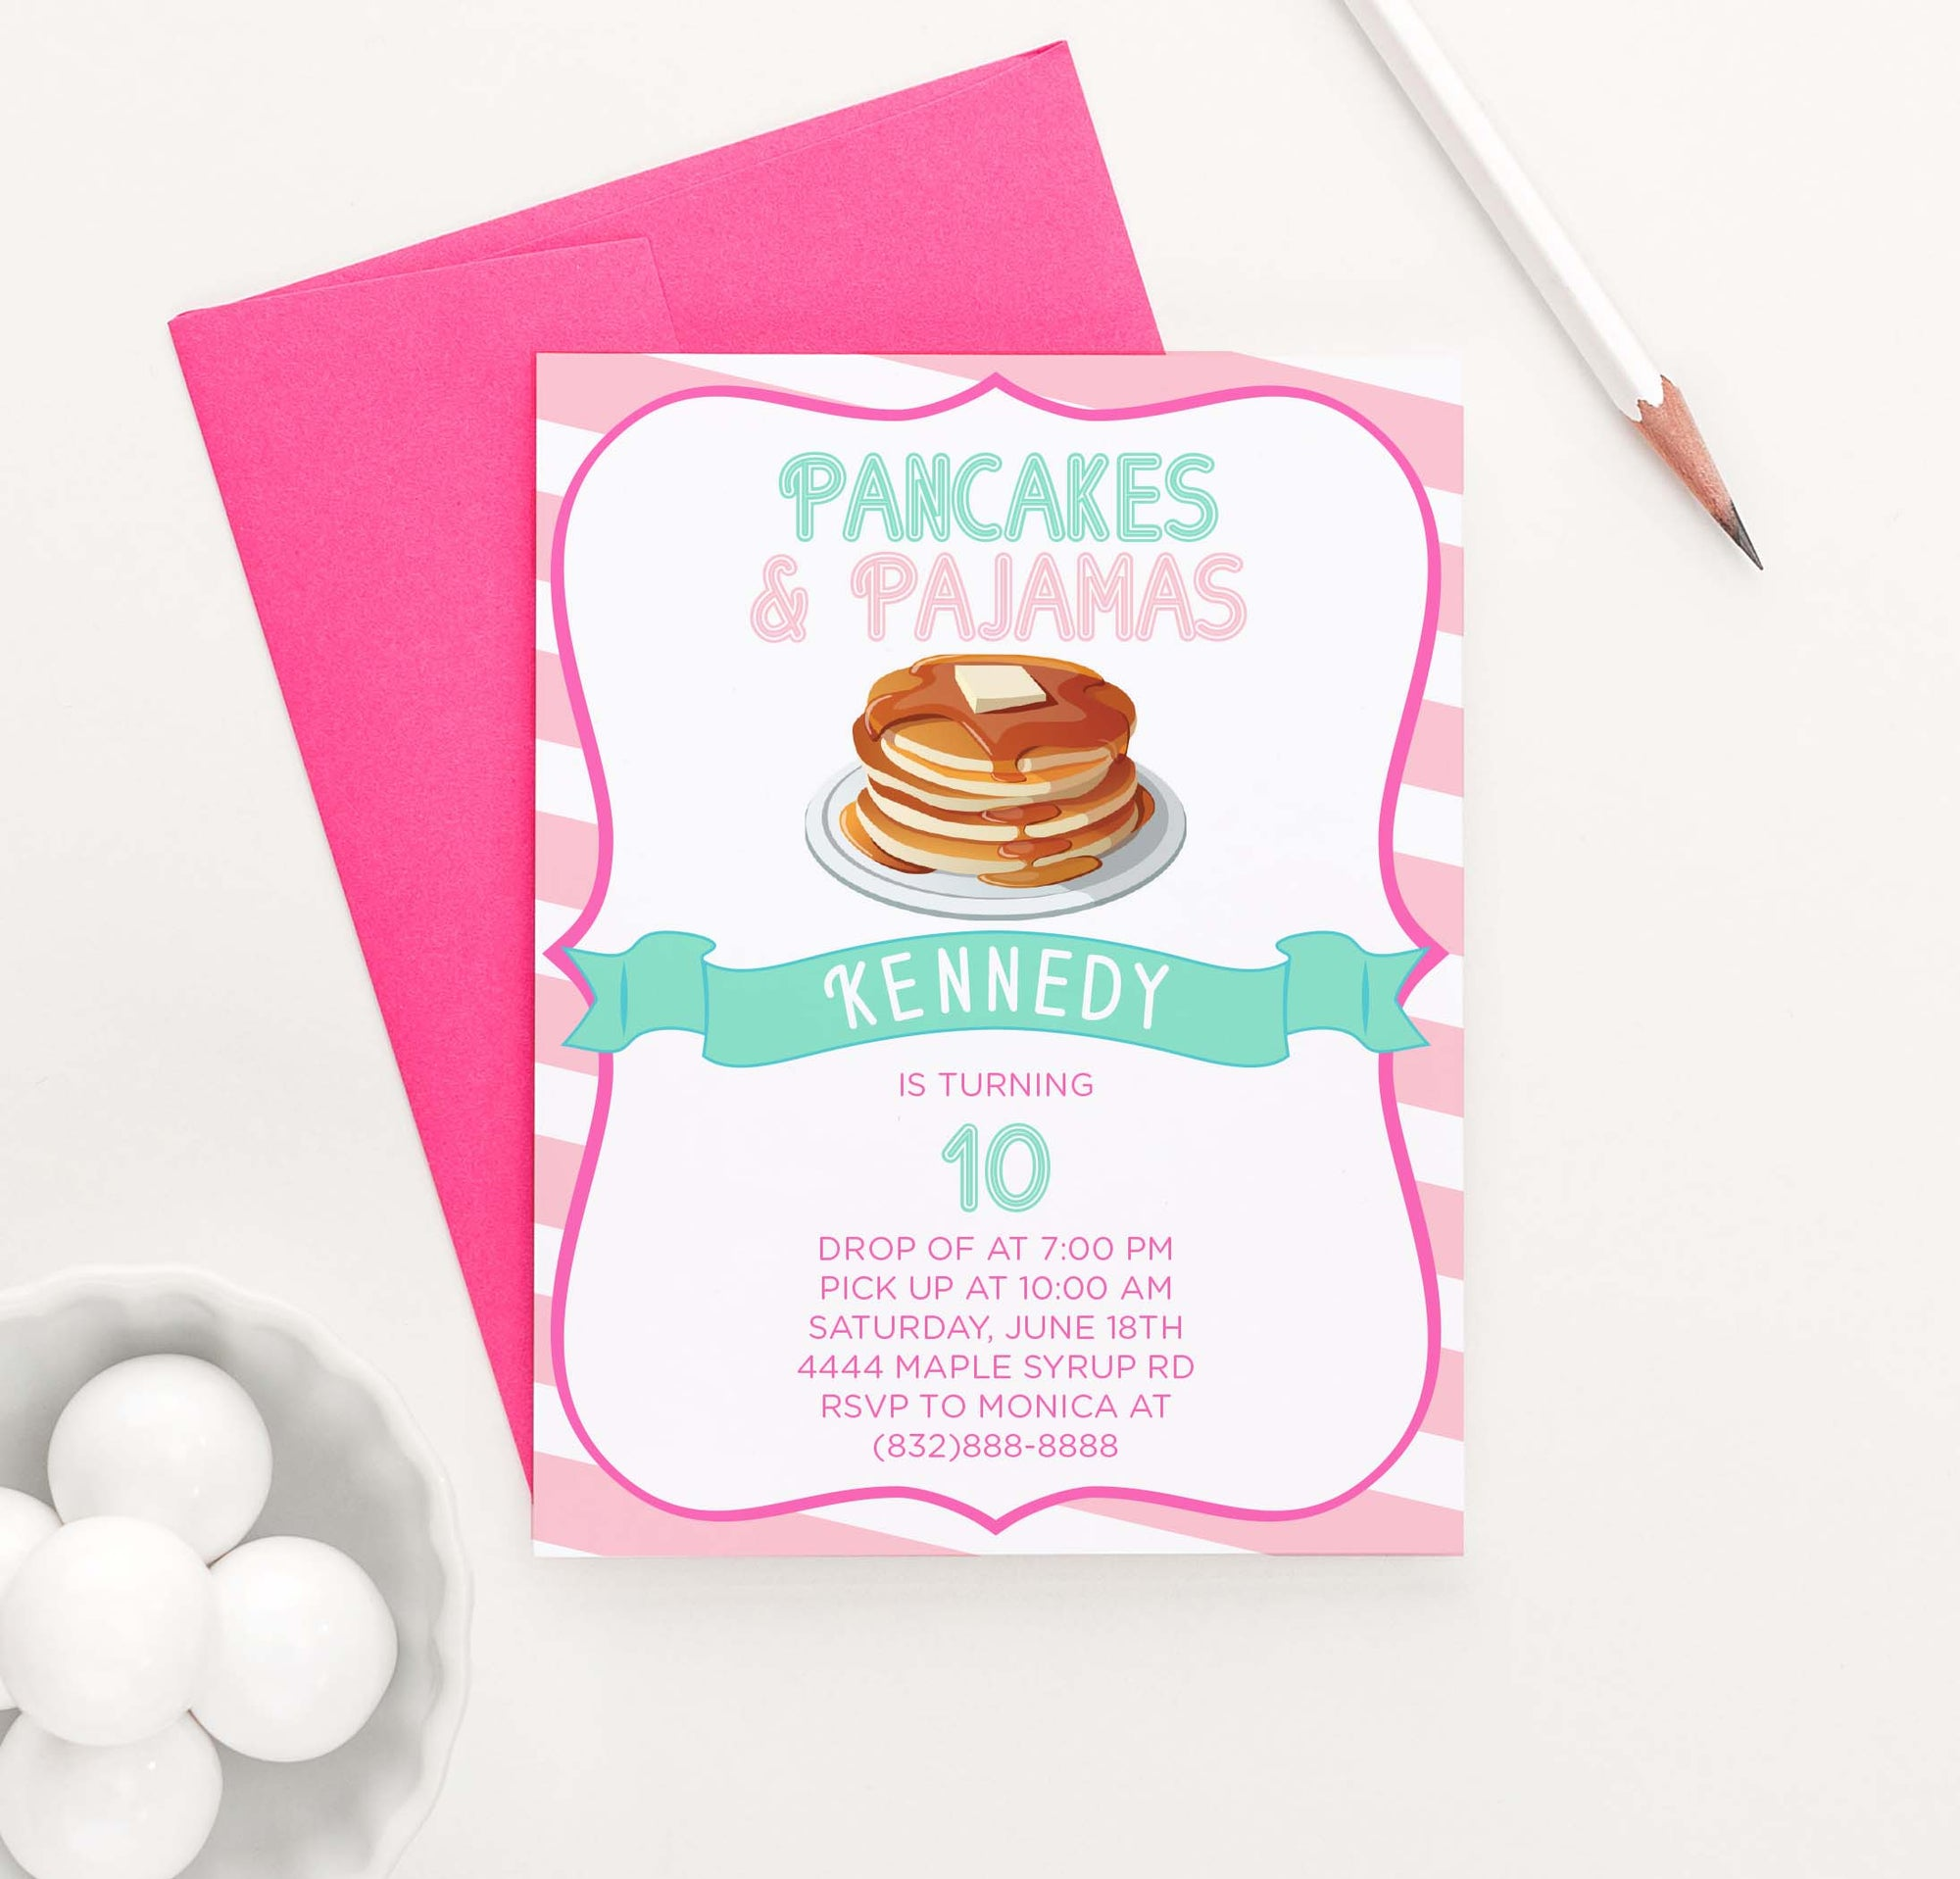 BI055 pancakes and pajames birthday party invitation for girls fun pink stripes 1